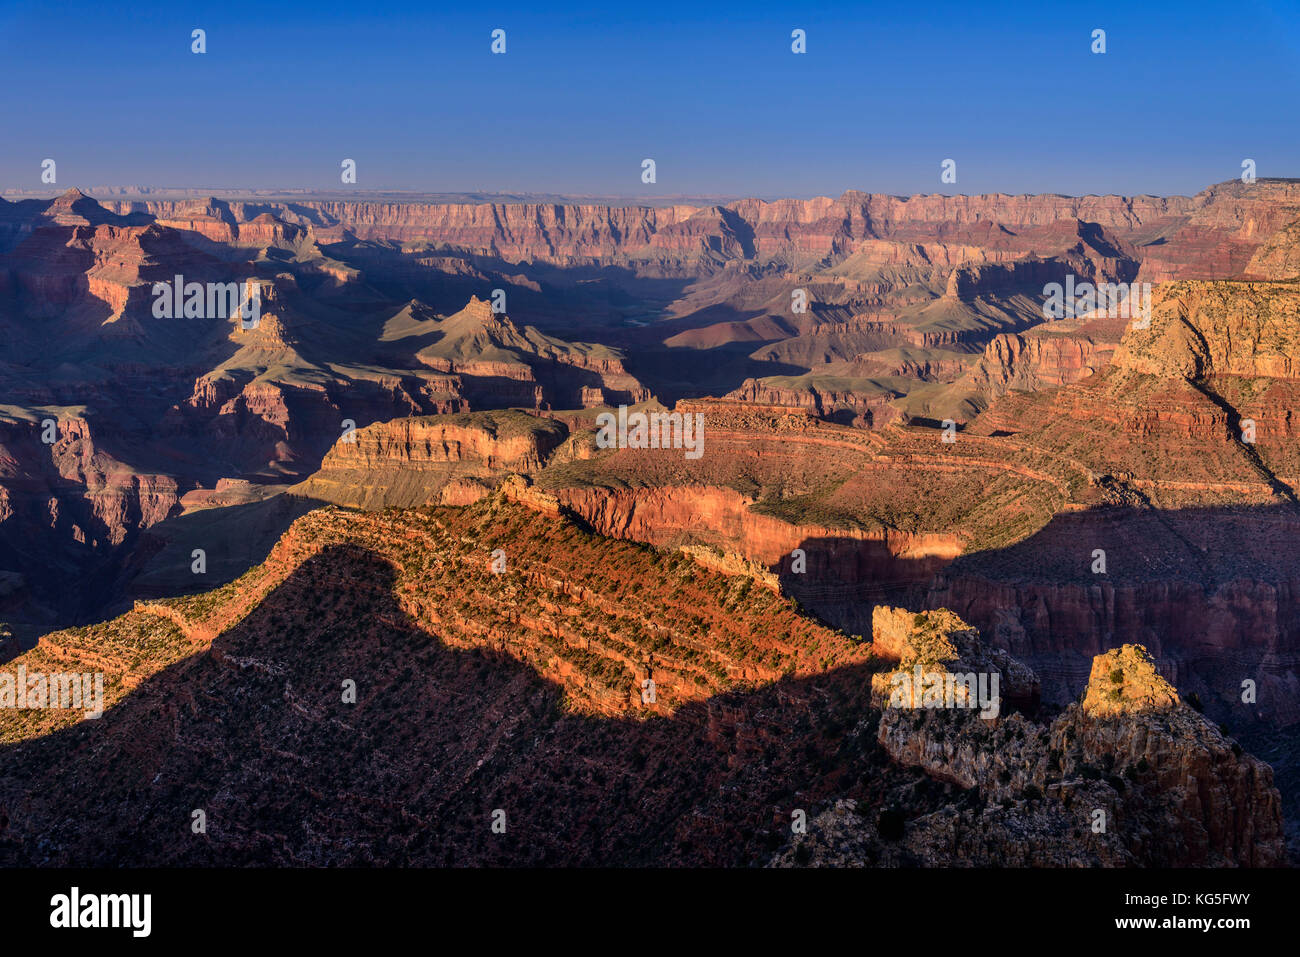 The USA, Arizona, Grand canyon National Park, South Rim, Grandview Point - Stock Image